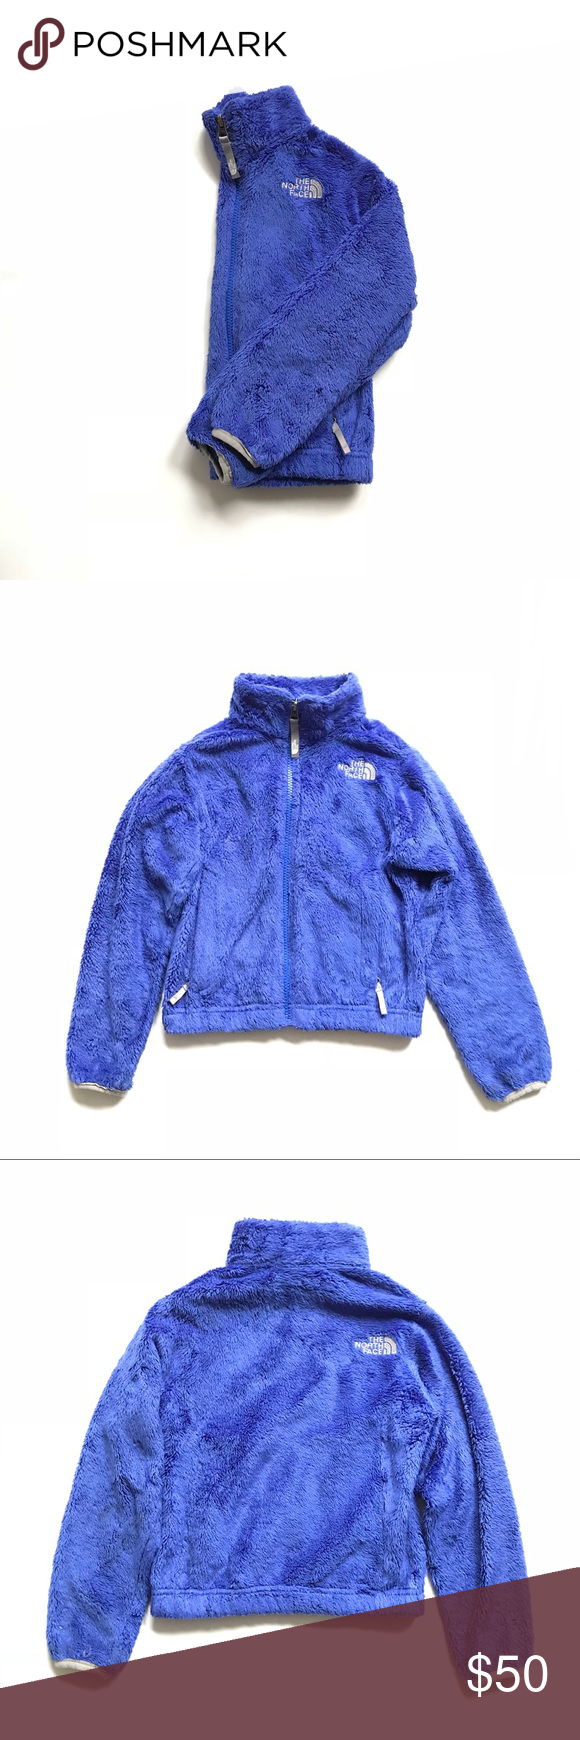 460332fd8 Girls purple fuzzy North Face coat •The North Face girls royal ...